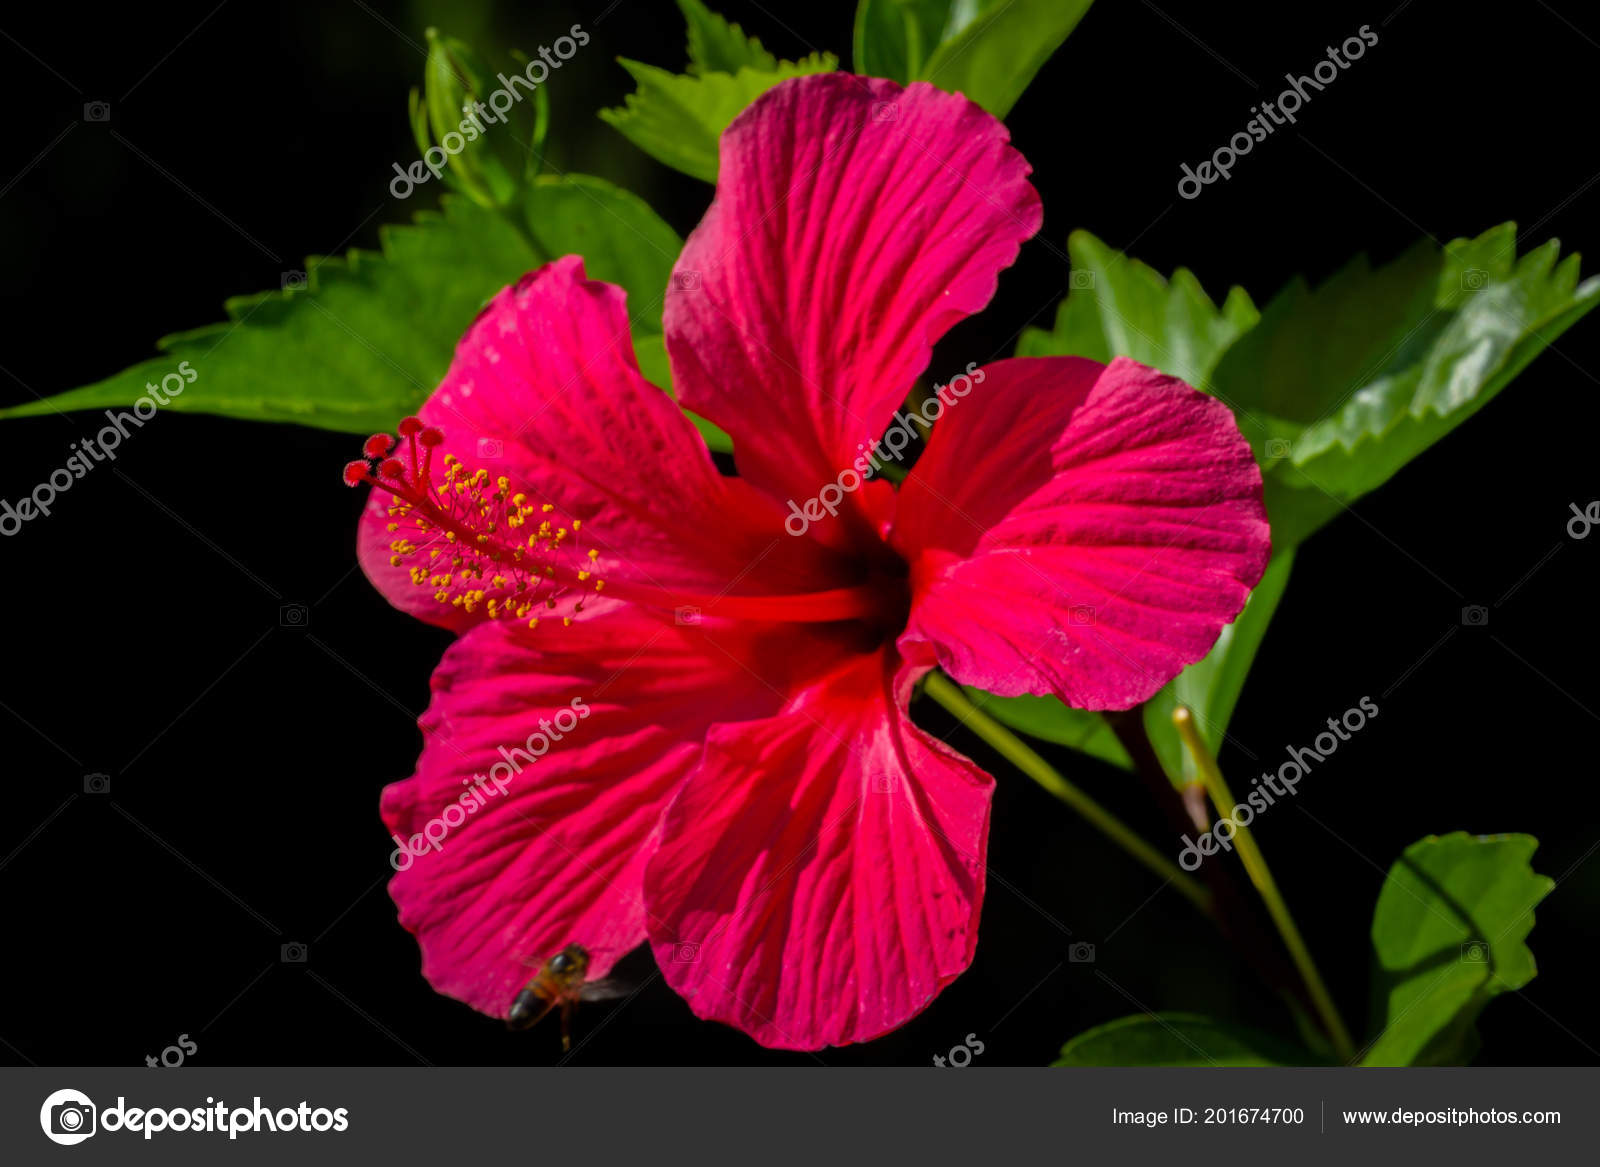 Tropical Red Hibiscus Flower With Leaves On Black Background Stock